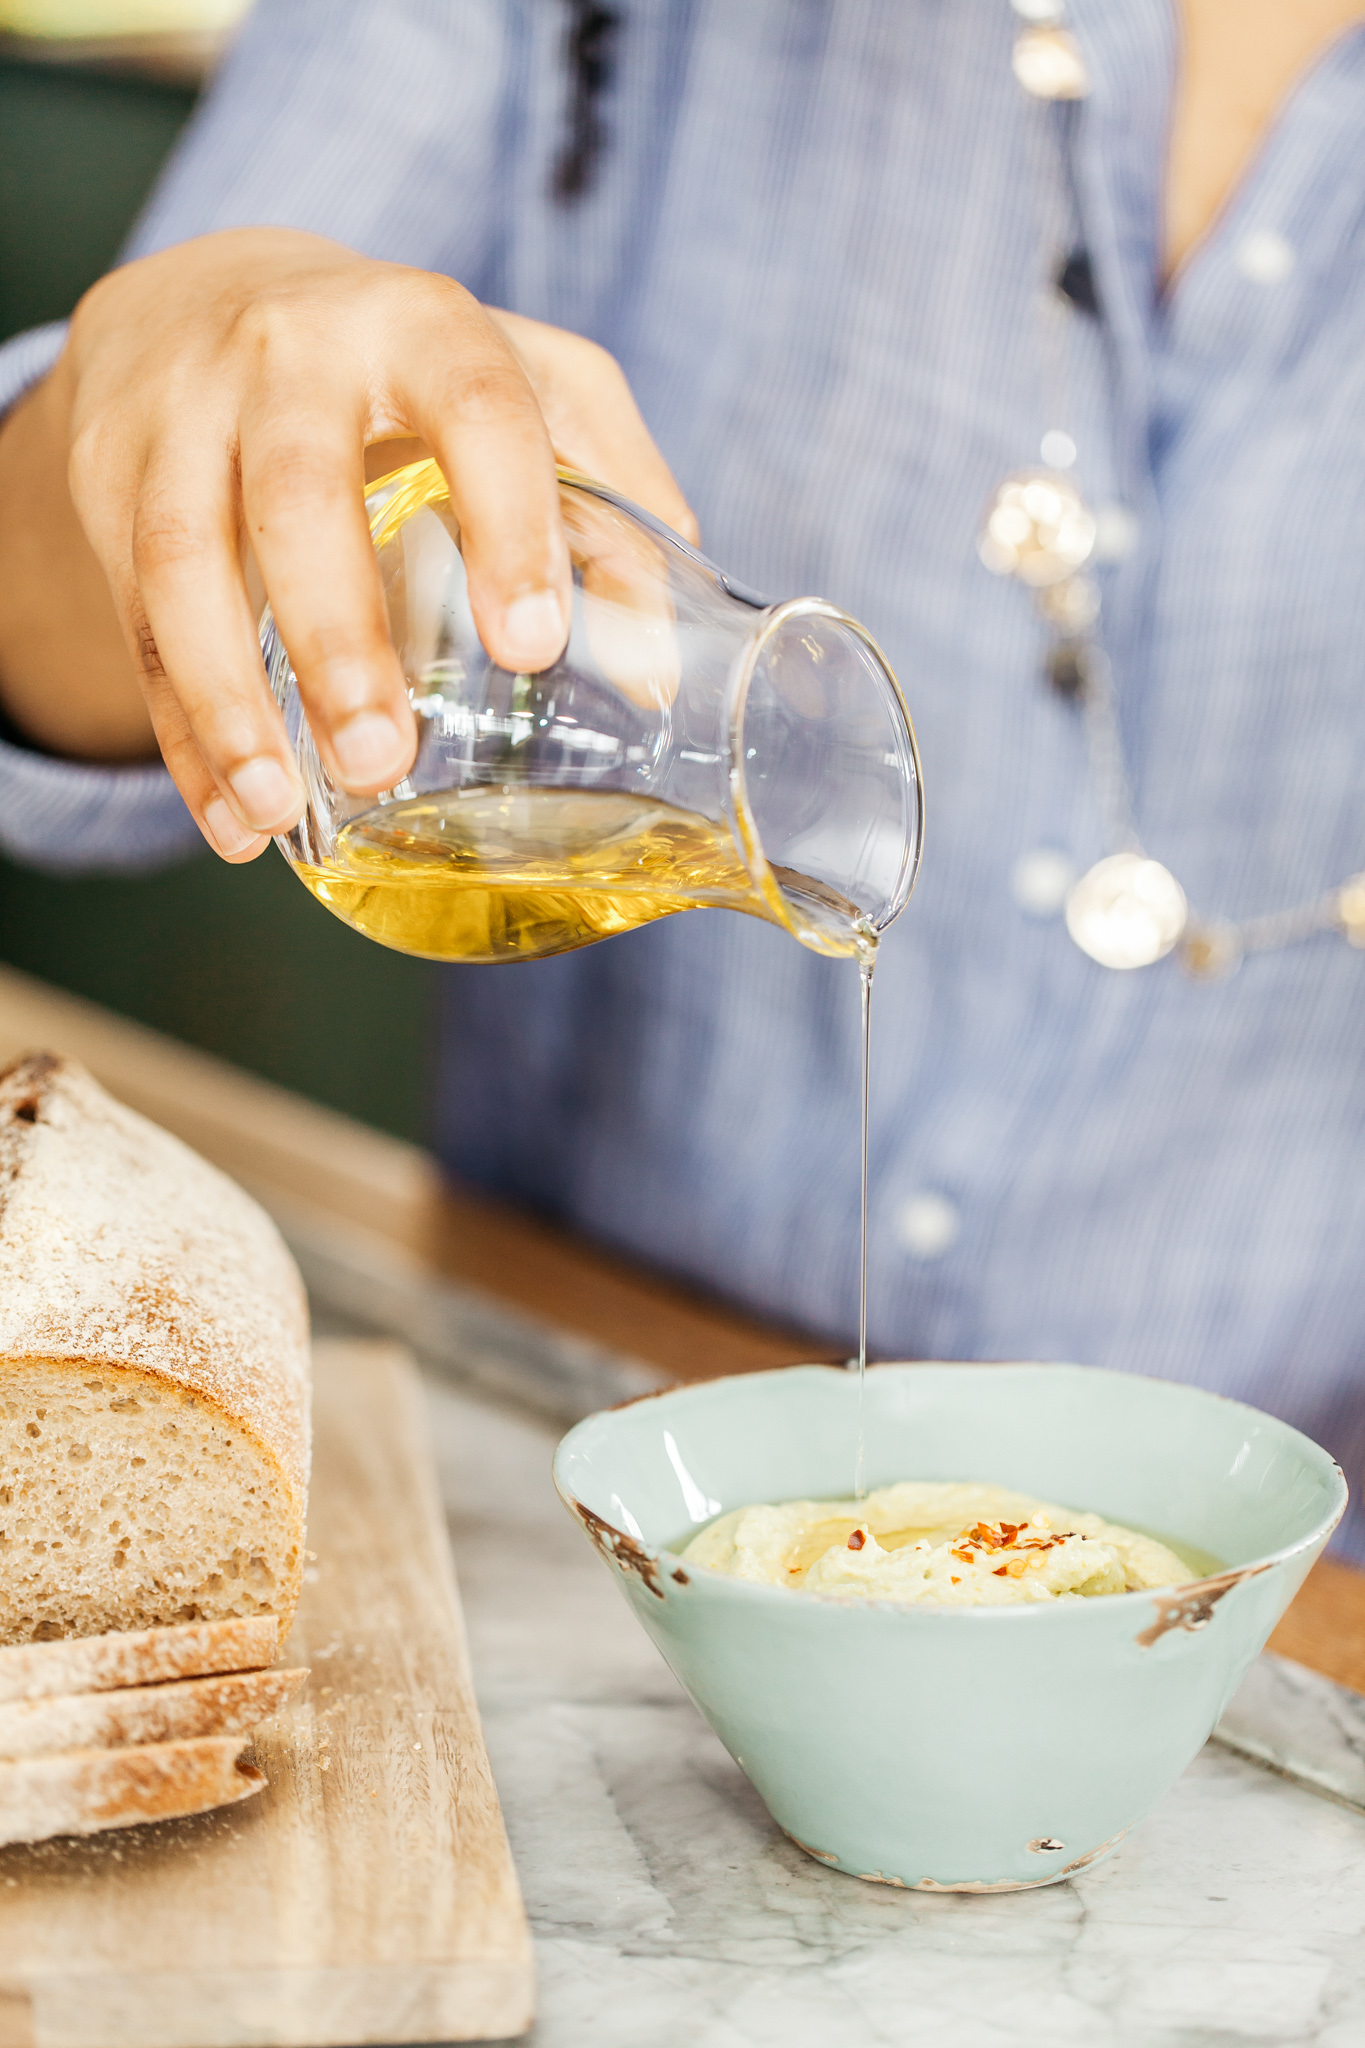 Oil being added to a hummus style dip.Food lifestyle photography for Bare Biology by Emma Gutteridge